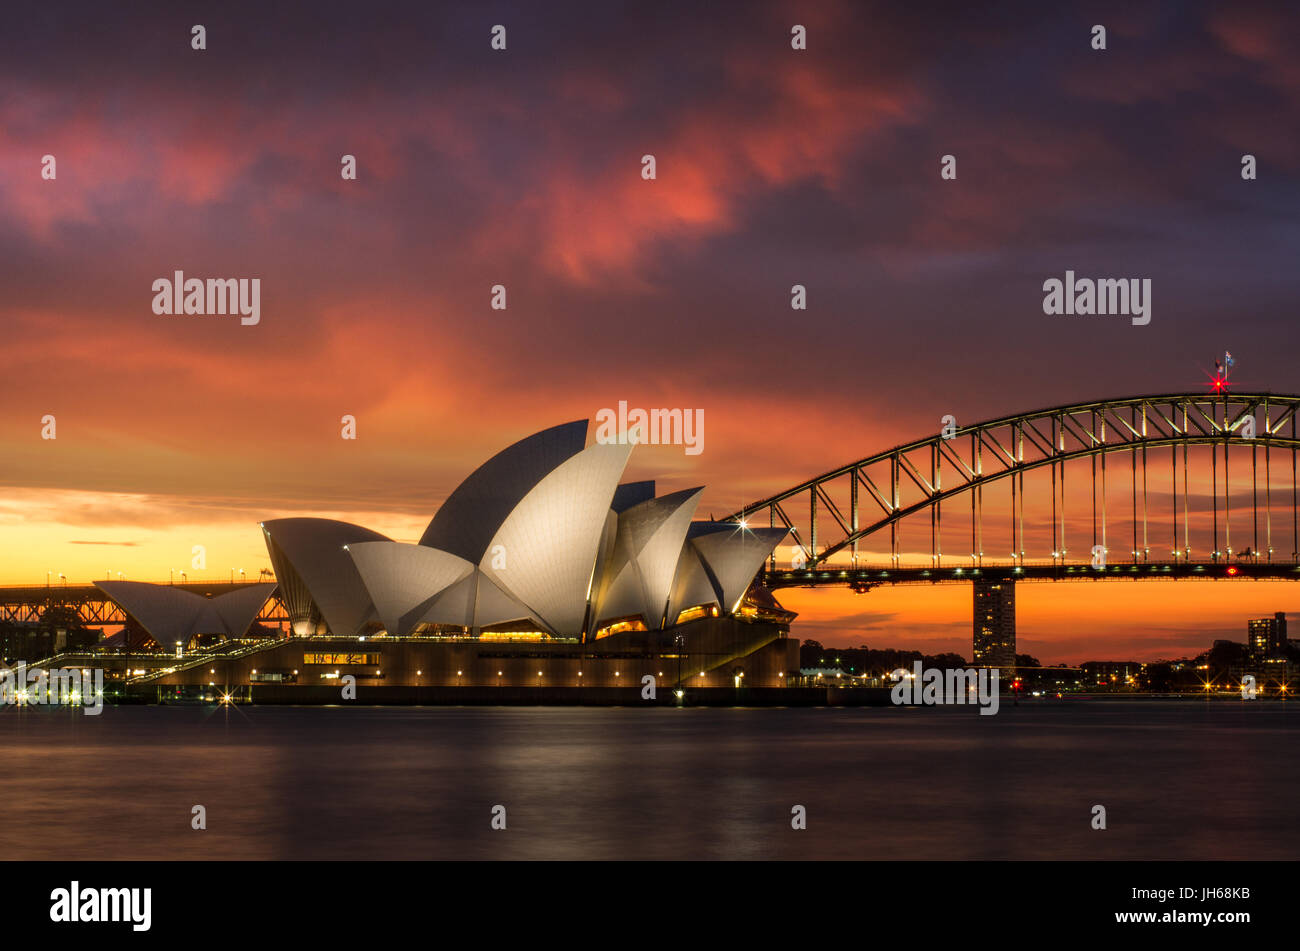 Sydney Opera House illuminated at sunset - Stock Image